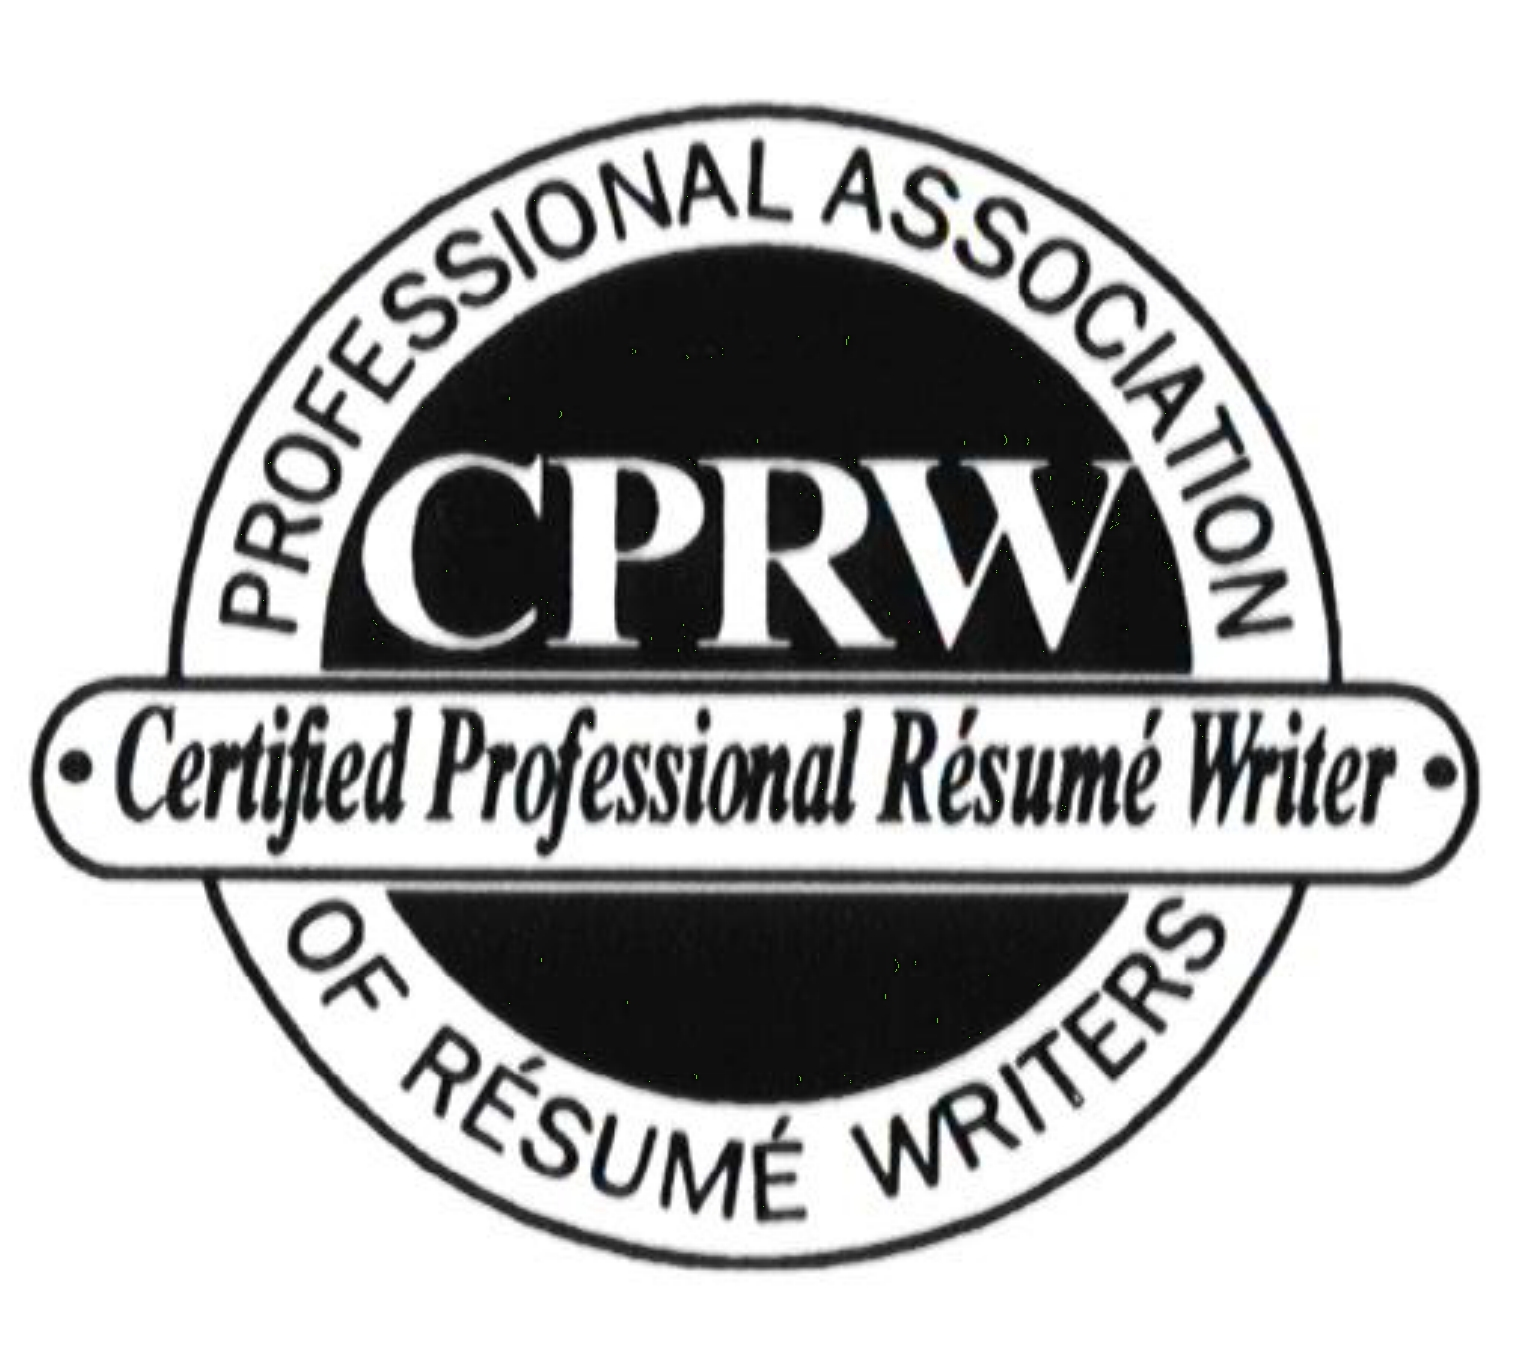 CPRW   Certified Professional Resume Writer